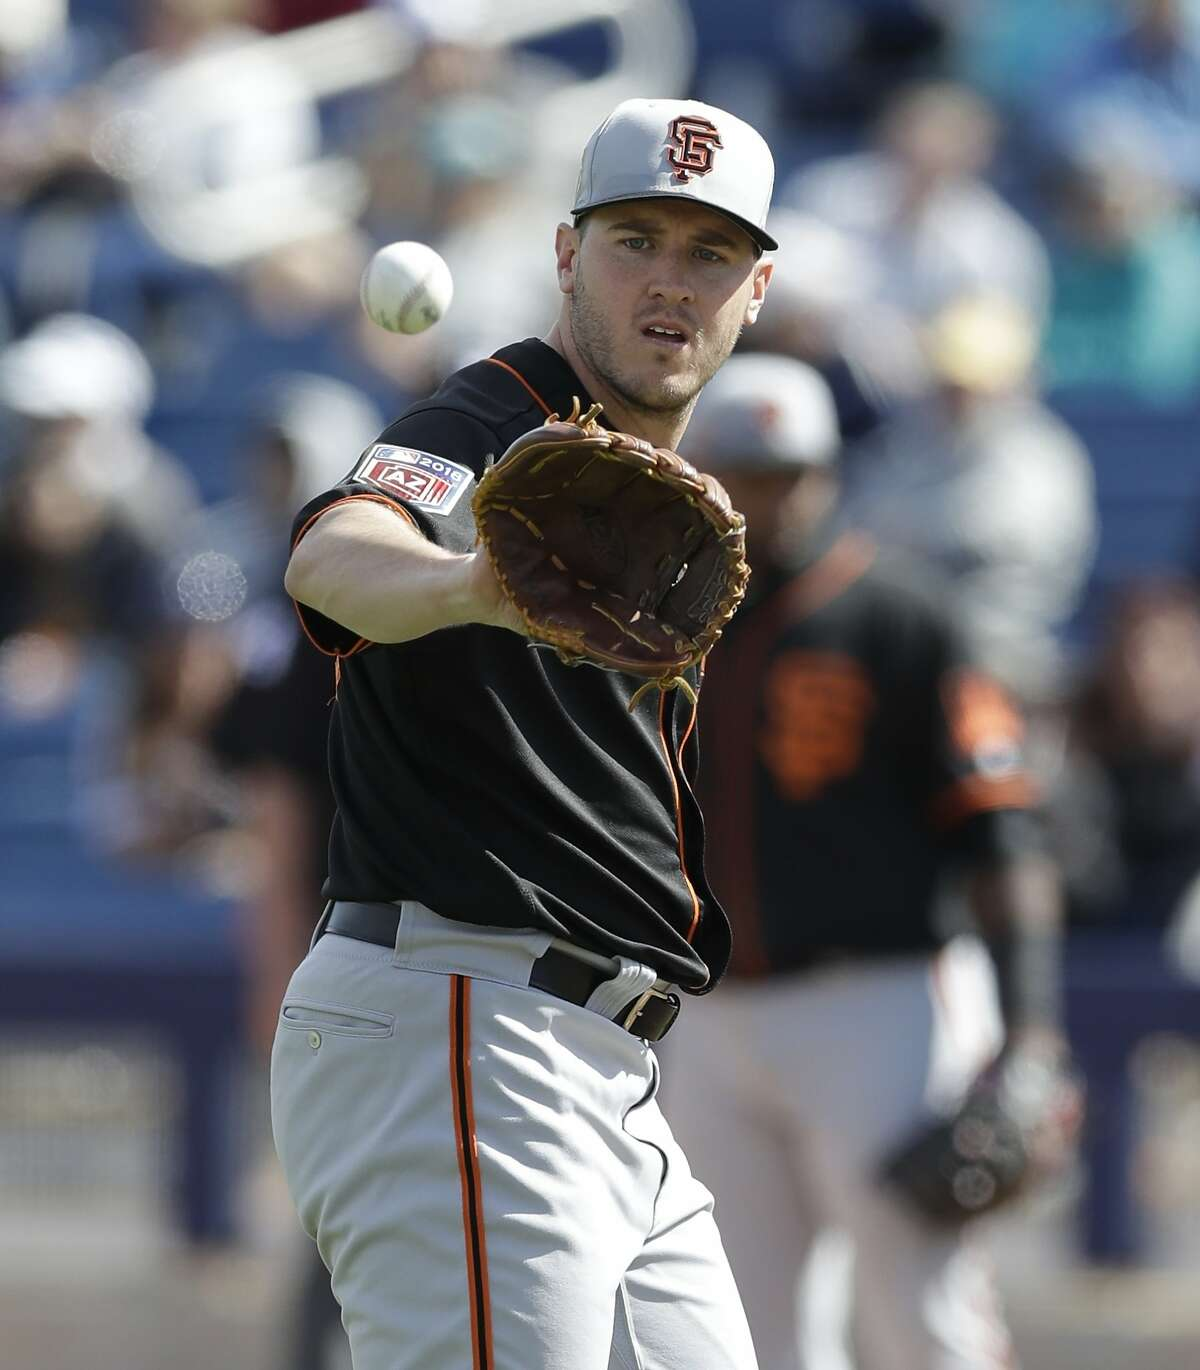 San Francisco Giants pitcher Ty Blach catches a toss from the third baseman during the third inning of a spring training baseball game against the Milwaukee Brewers, Wednesday, Feb. 28, 2018, in Maryvale, Ariz. (AP Photo/Carlos Osorio)